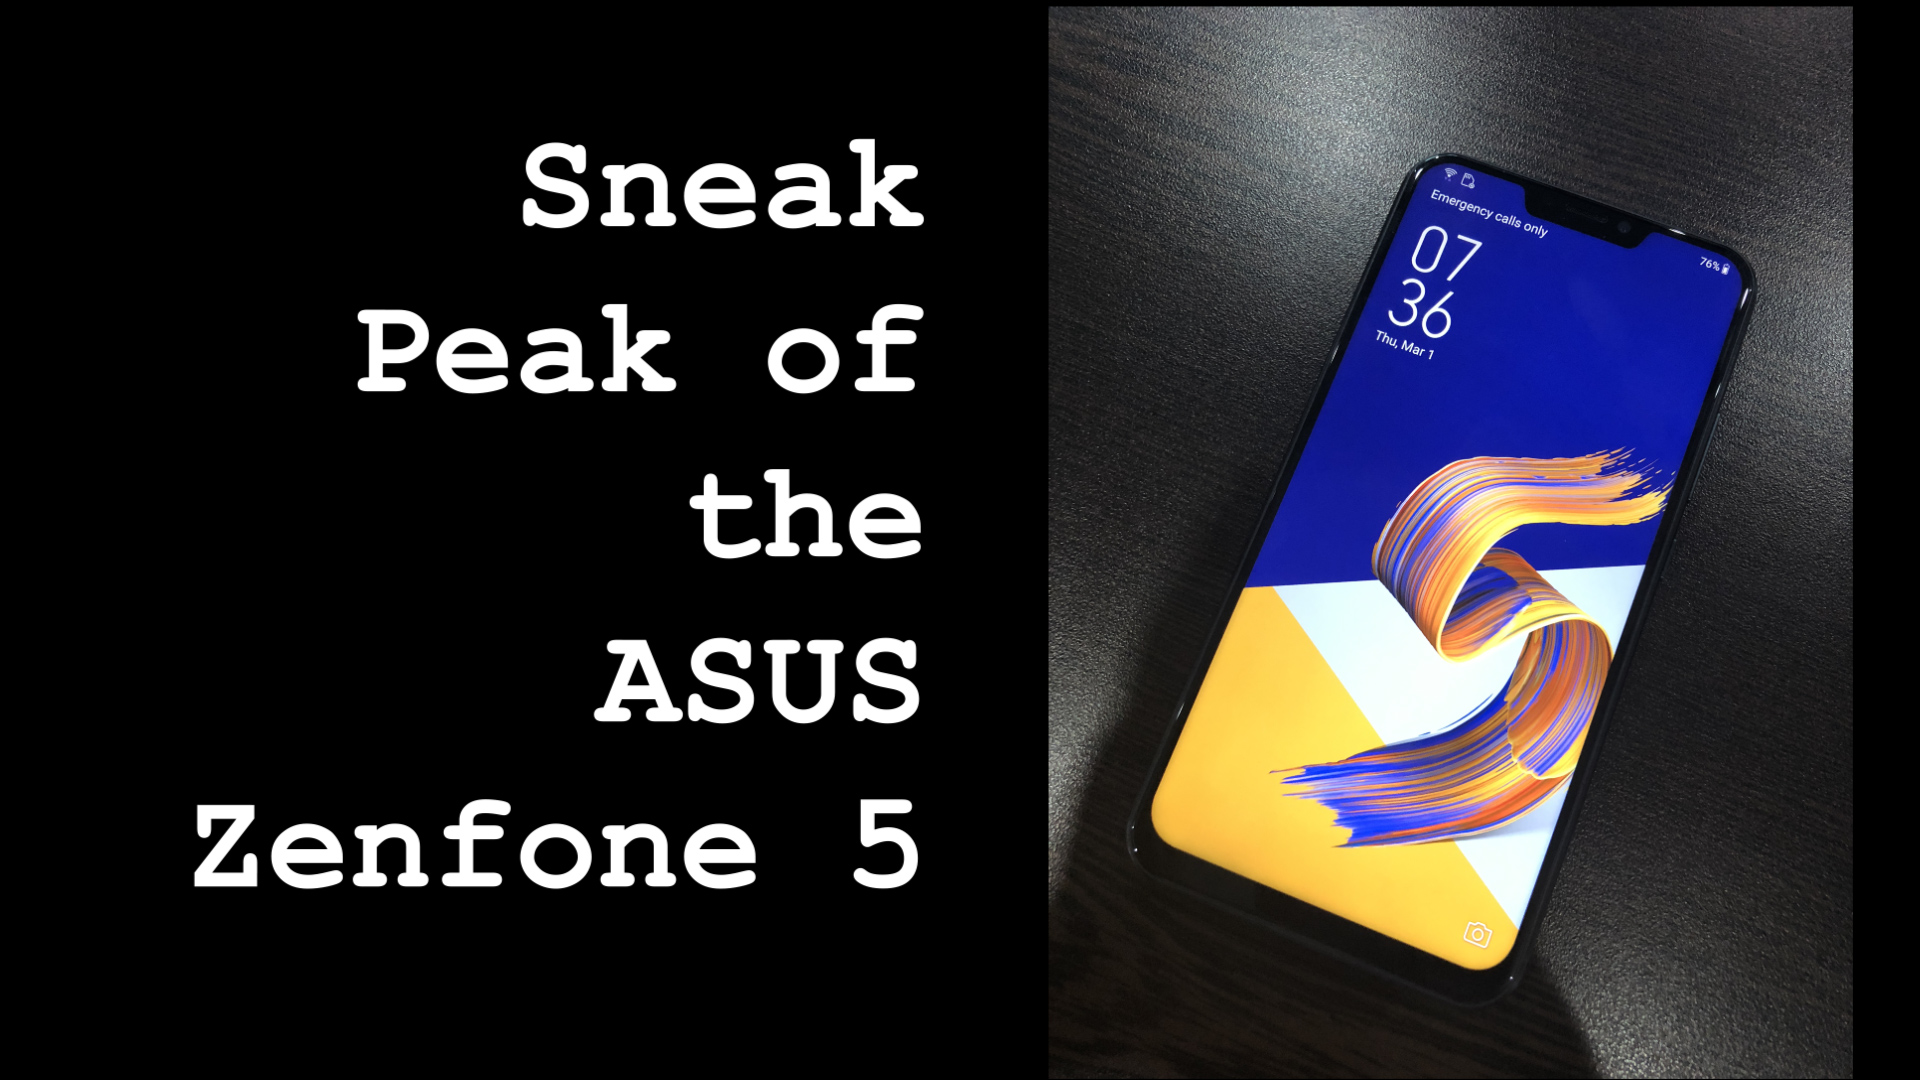 Techbeatph.com: Sneak Peak at the ASUS Zenfone 5